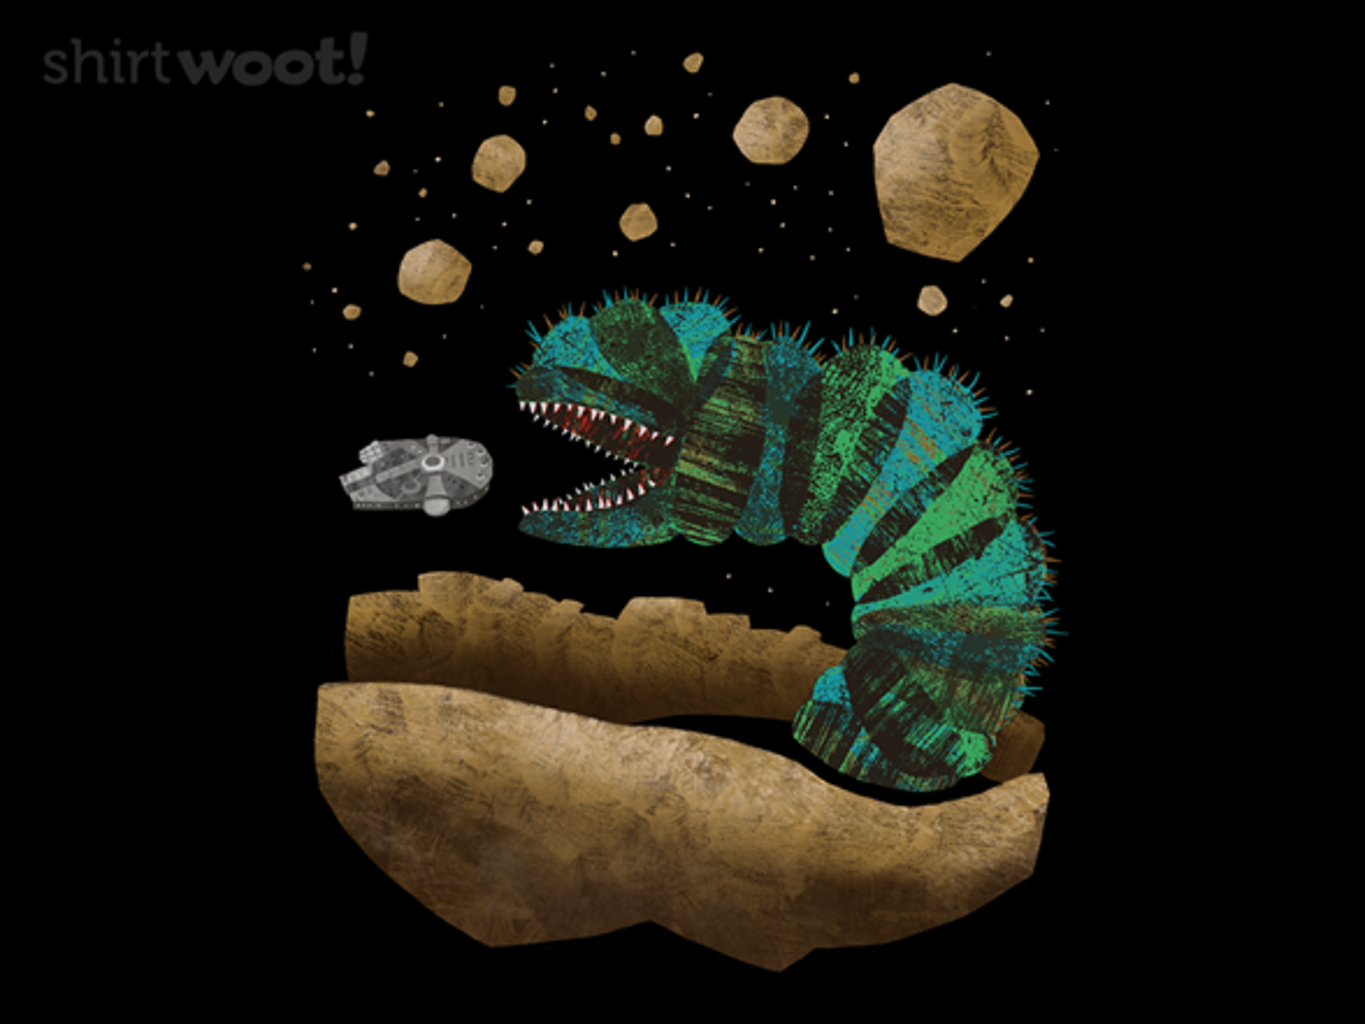 Woot!: The Very Hungry Exogorth